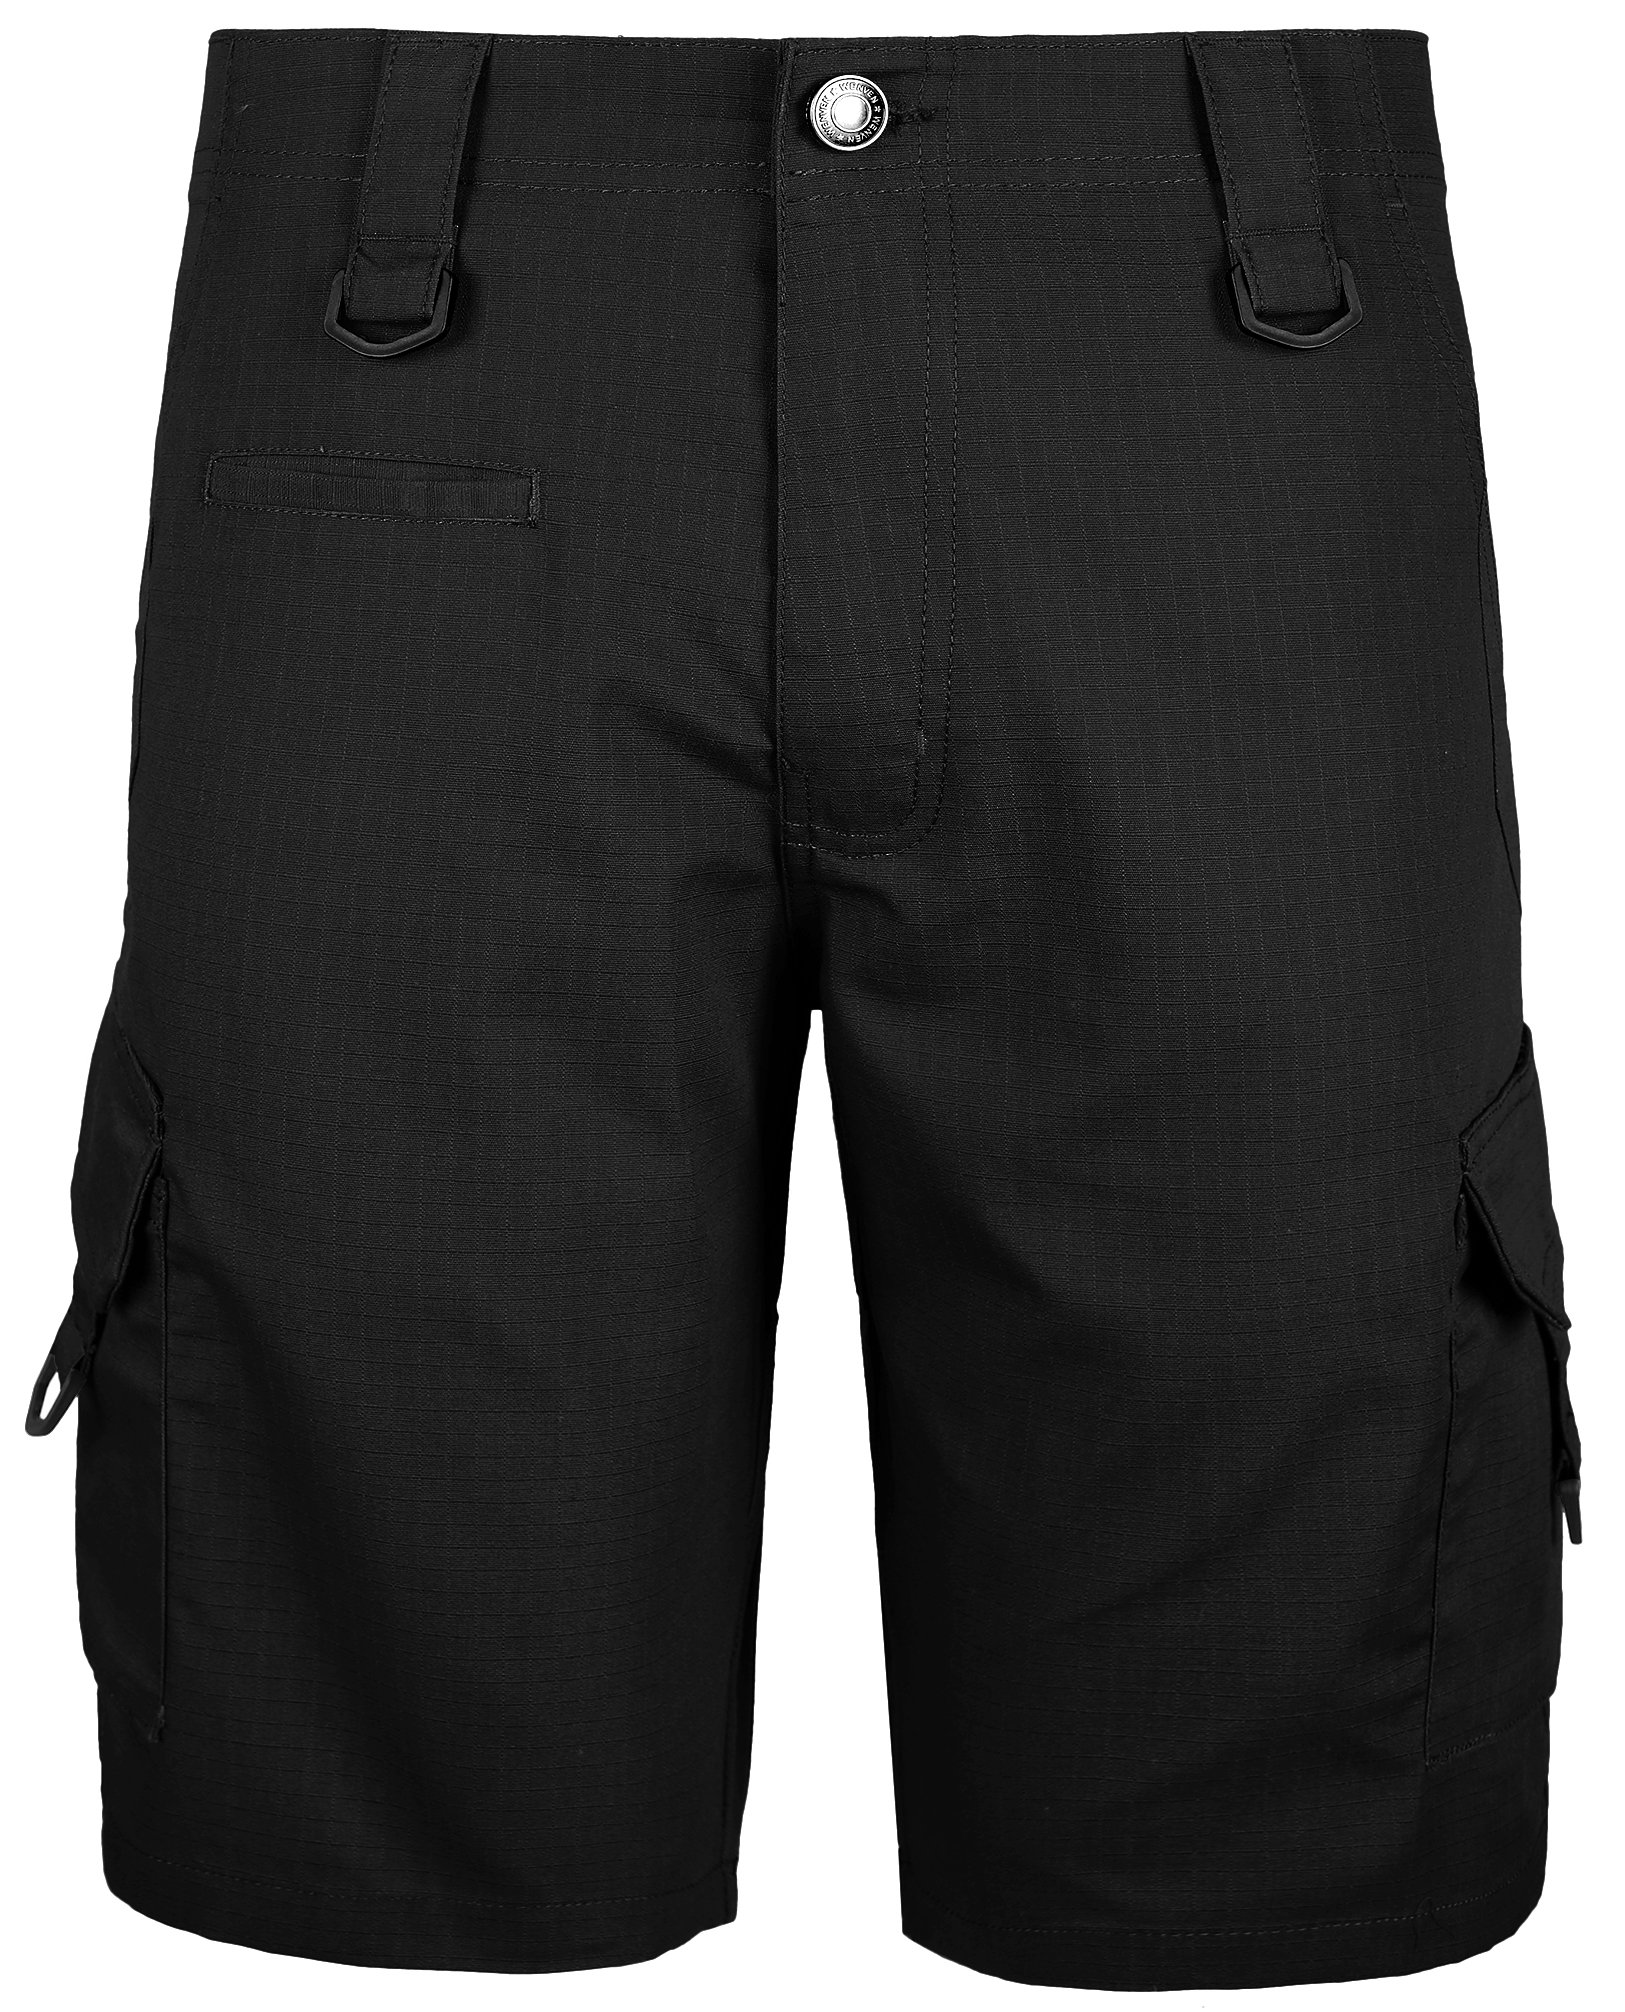 WenVen Men's Rip-Stop Cargo Short Relaxed Fit, Black, 32